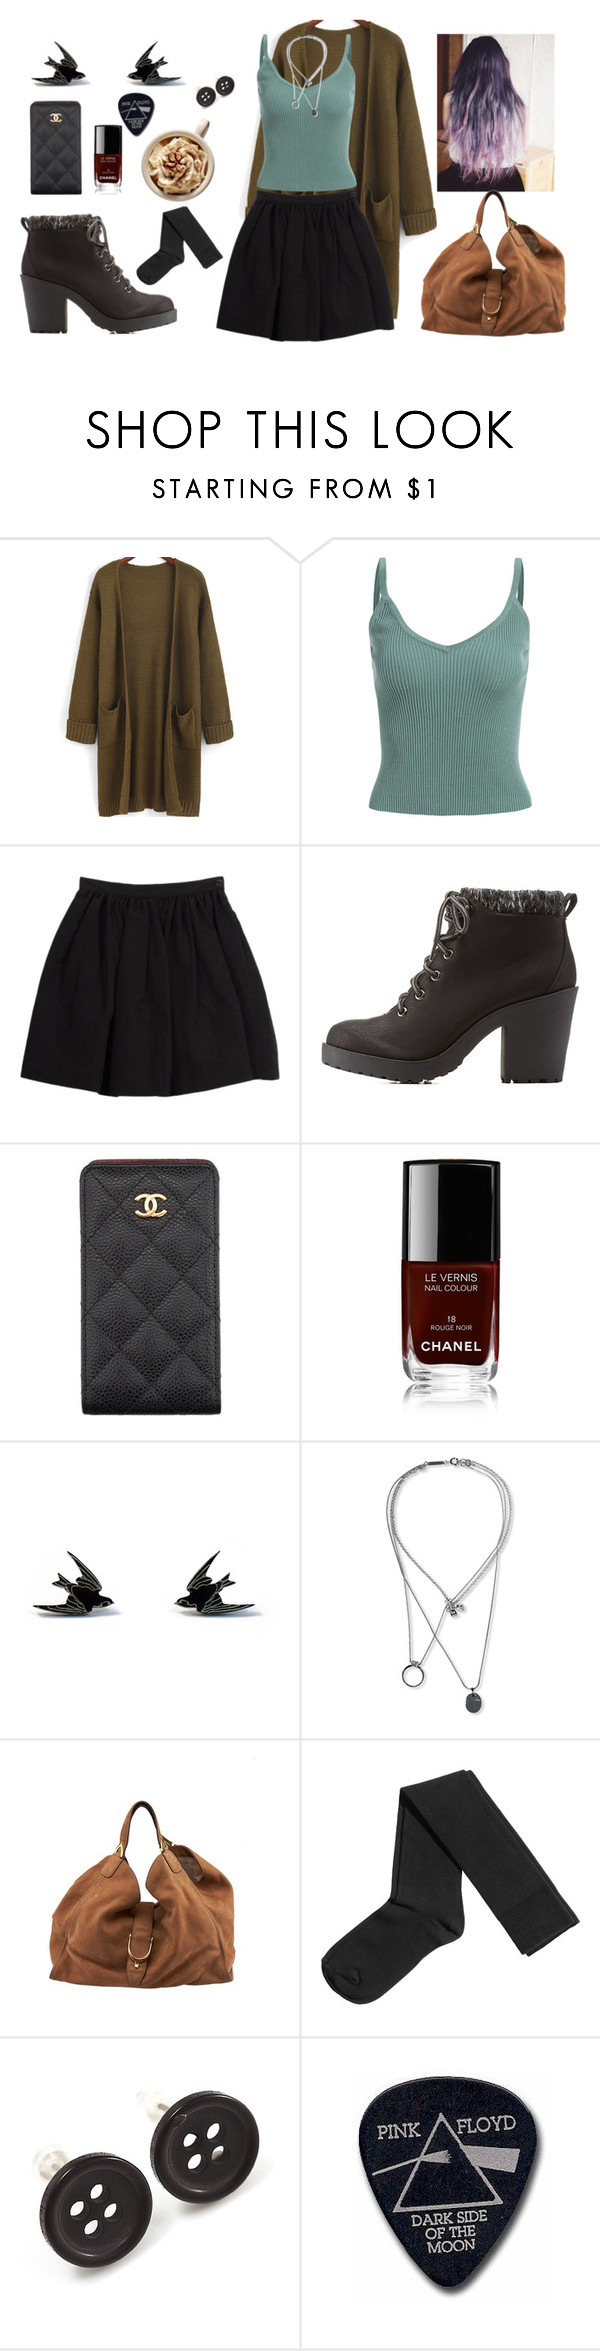 """""""Untitled #465"""" by athinakts on Polyvore featuring Charles Anastase, Charlotte Russe, Chanel, Wolf & Moon, Maison Margiela, Gucci, H&M, Avalaya and Floyd"""